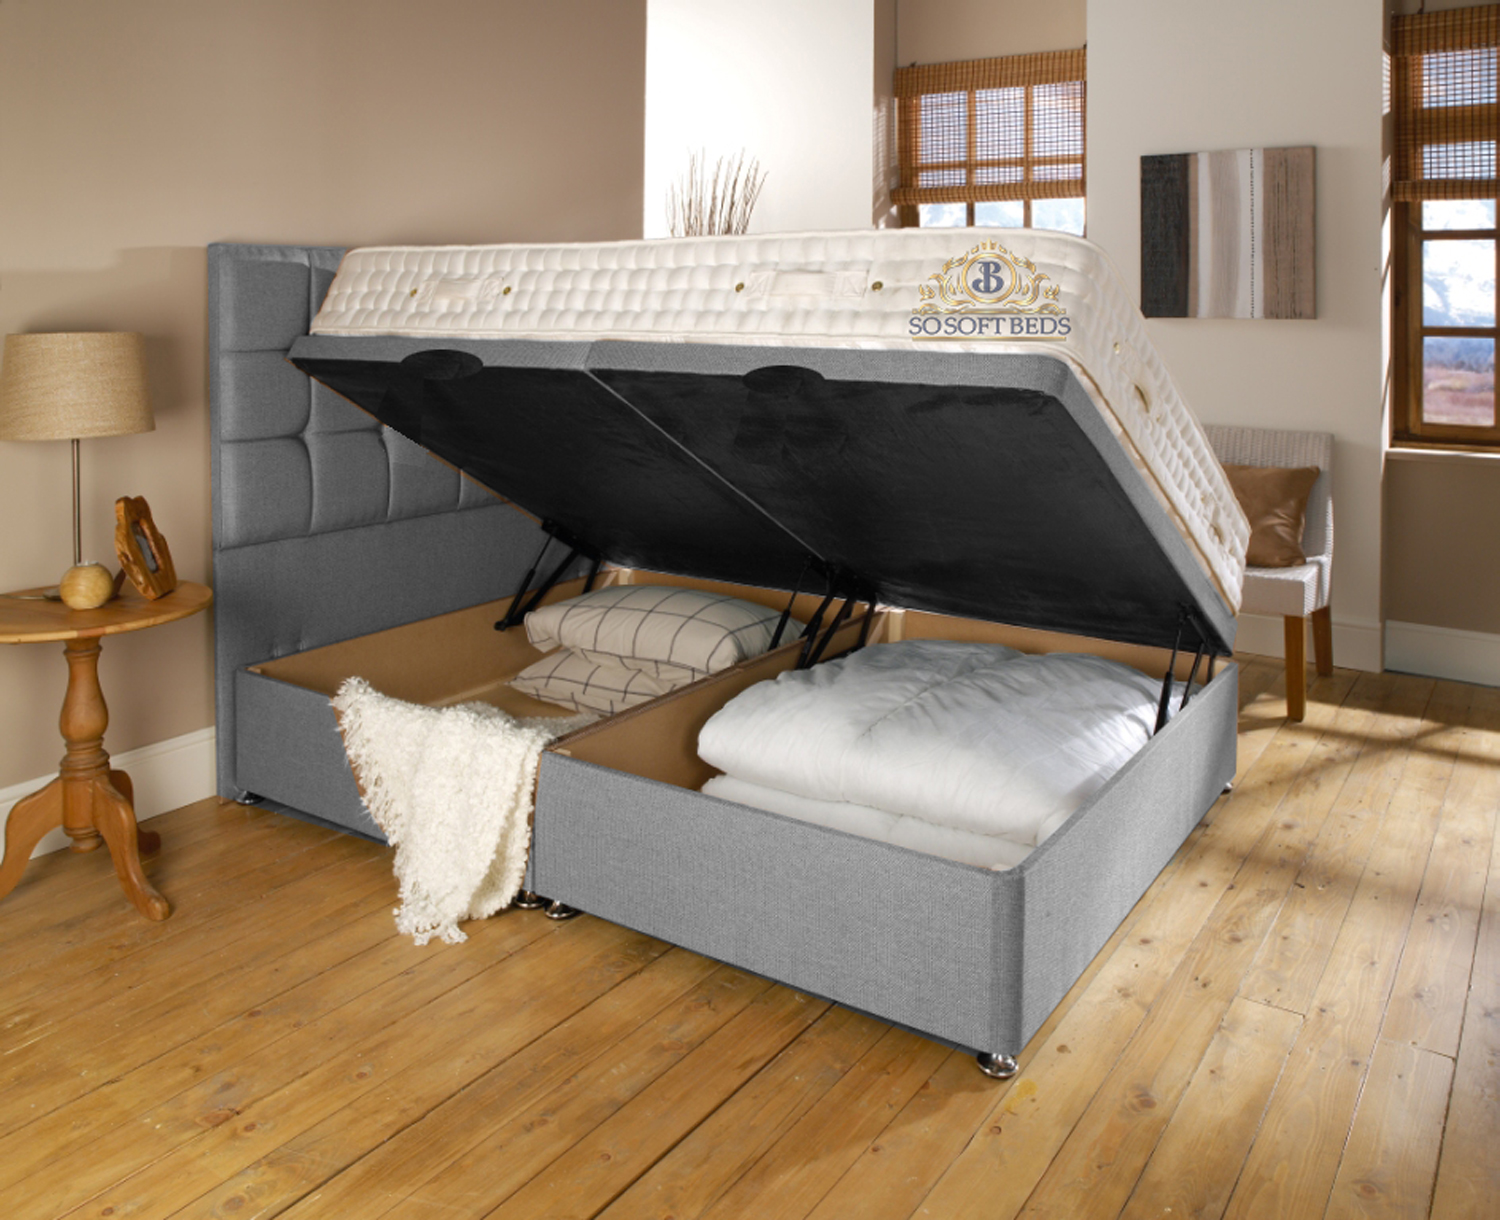 5 star Beds Ltd